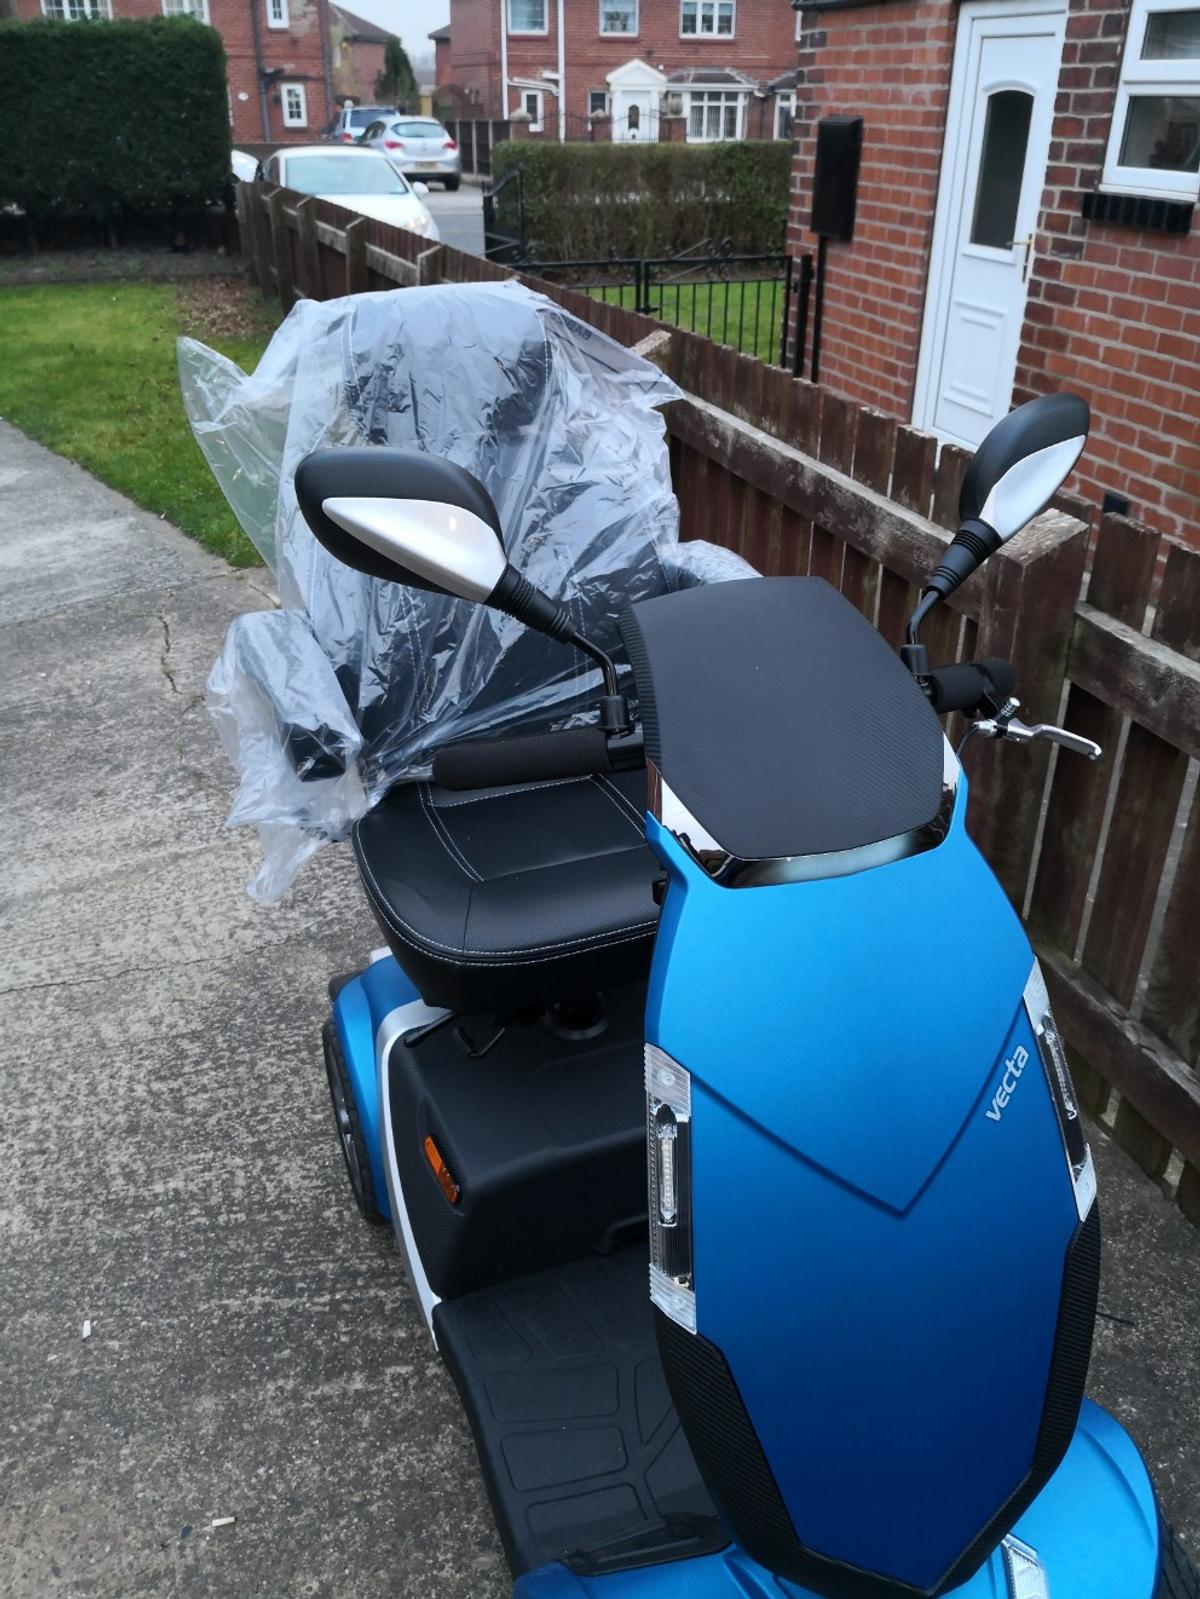 Rascal Vectra Sport Mobility Scooter in Barnsley for